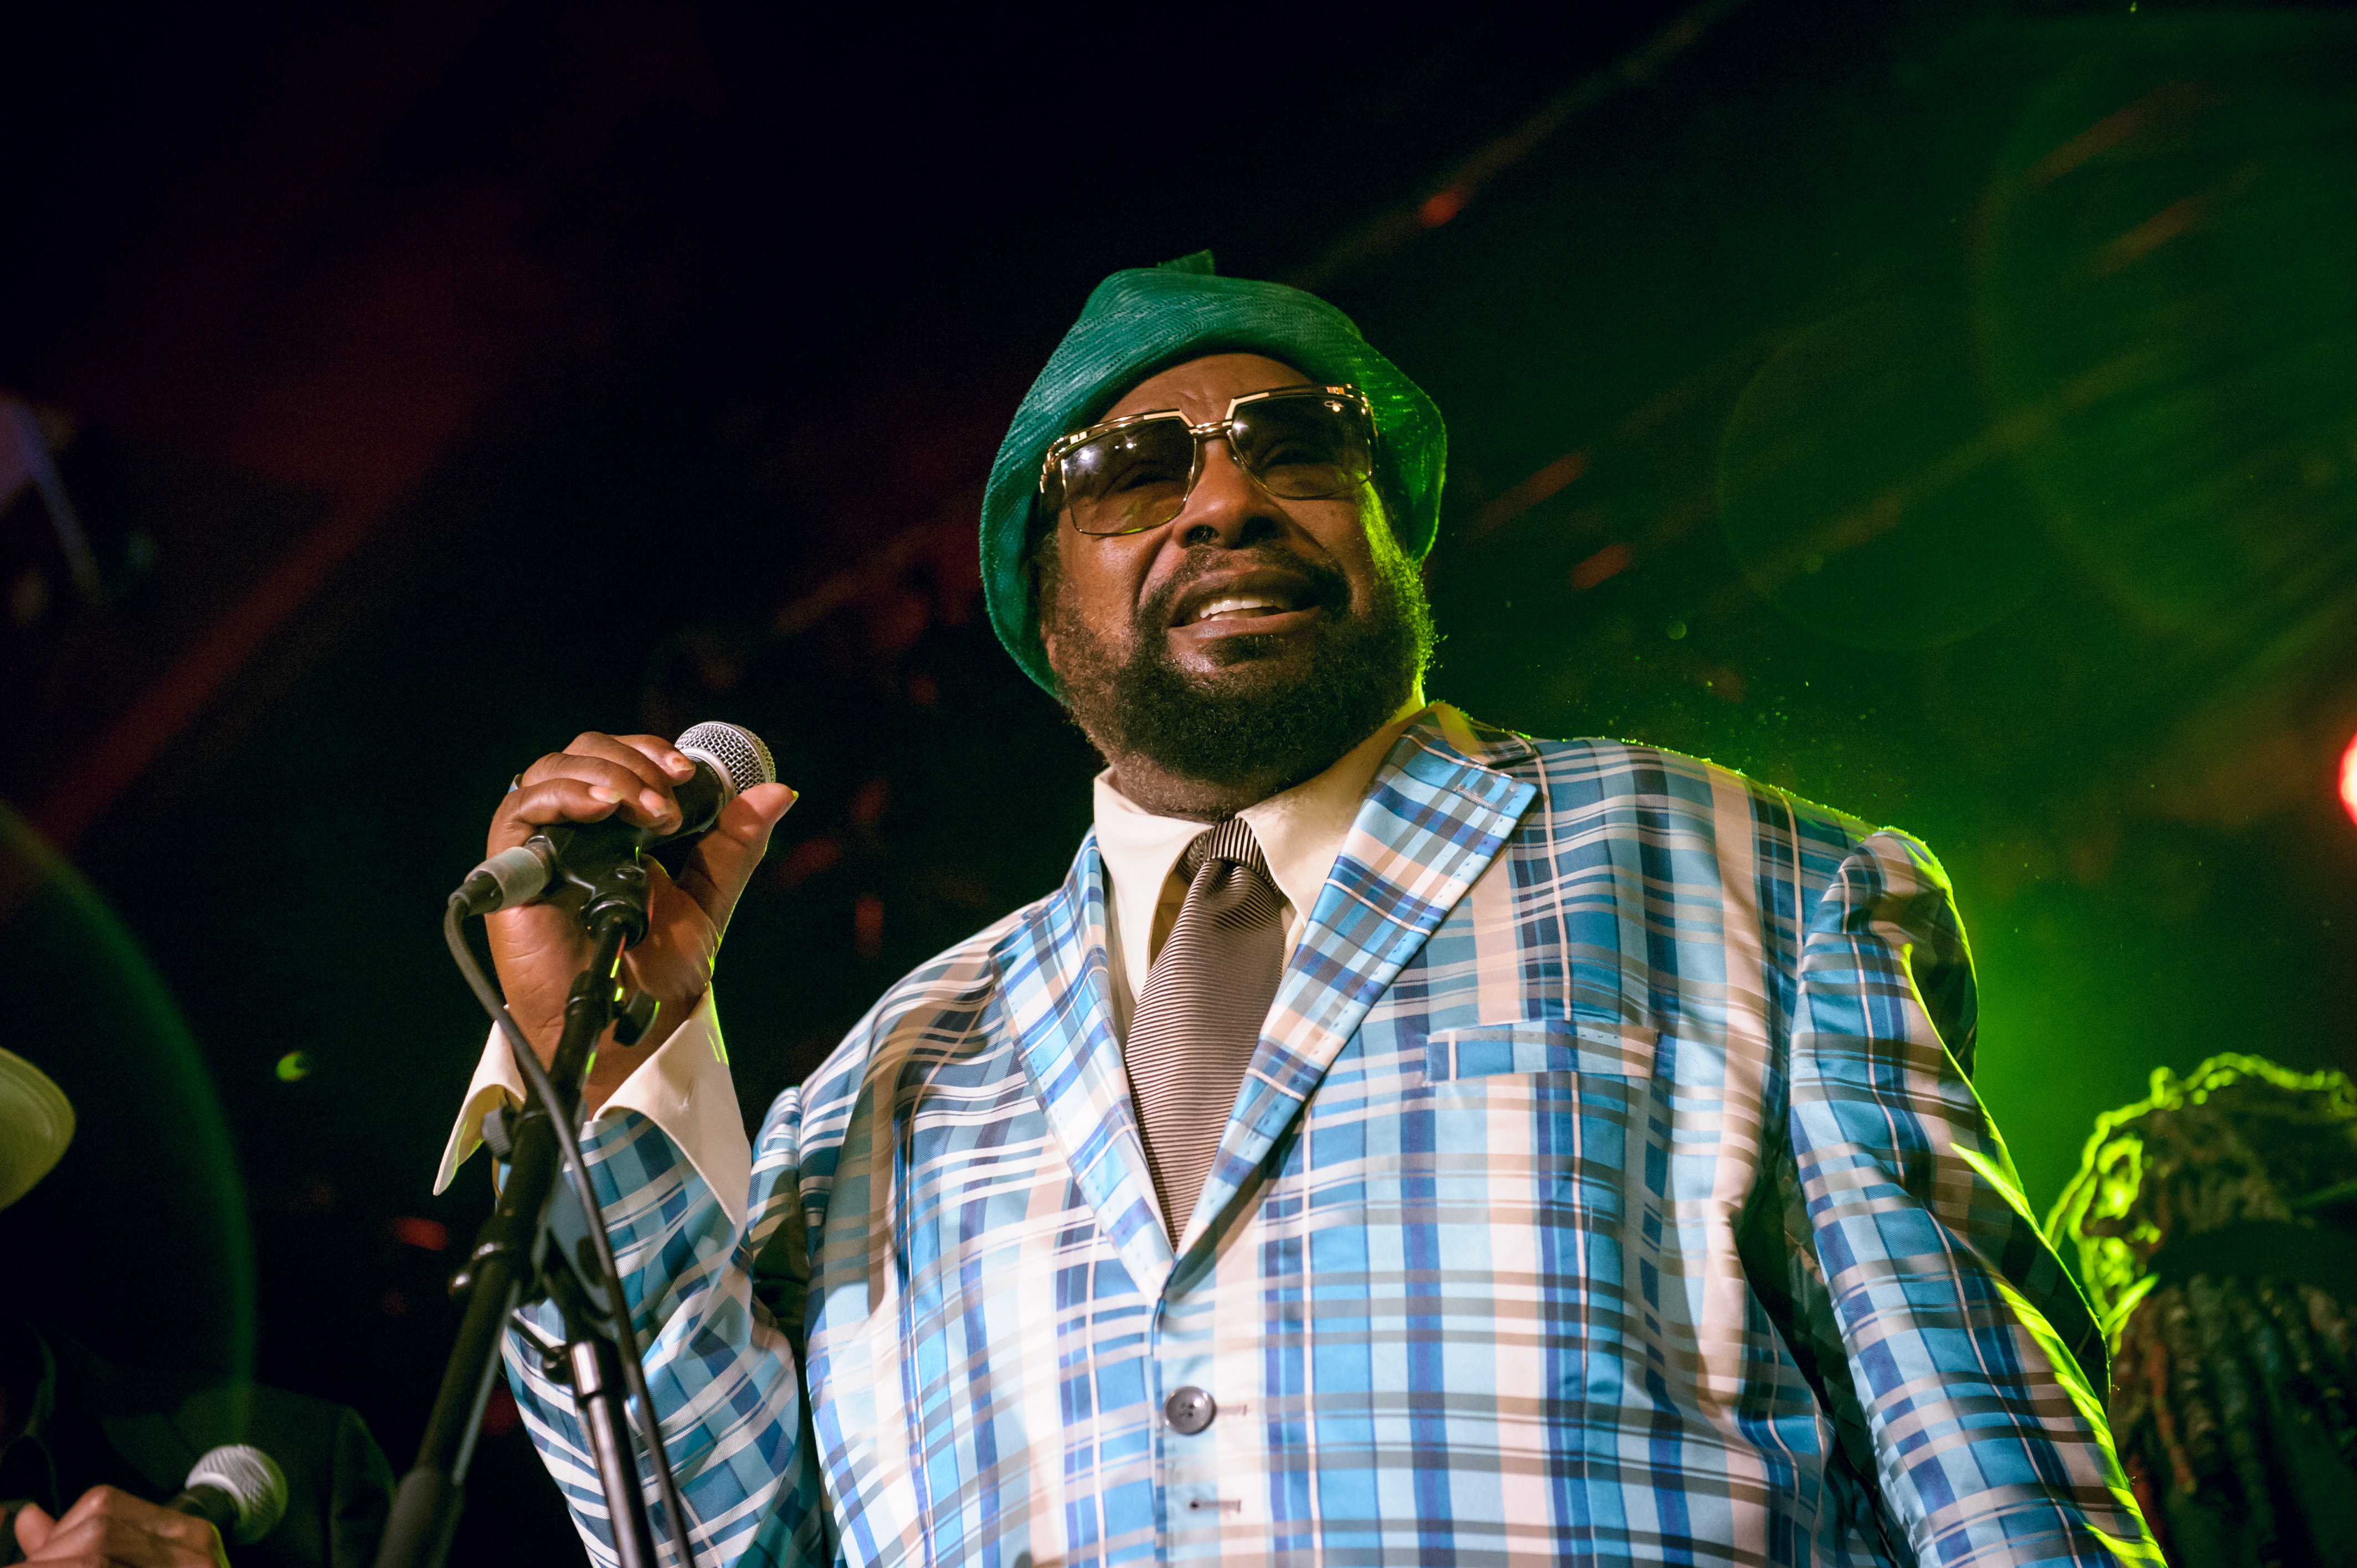 BERLIN, GERMANY - JULY 28:  George Clinton performs live on stage during a concert at Astra on July 28, 2014 in Berlin, Germa